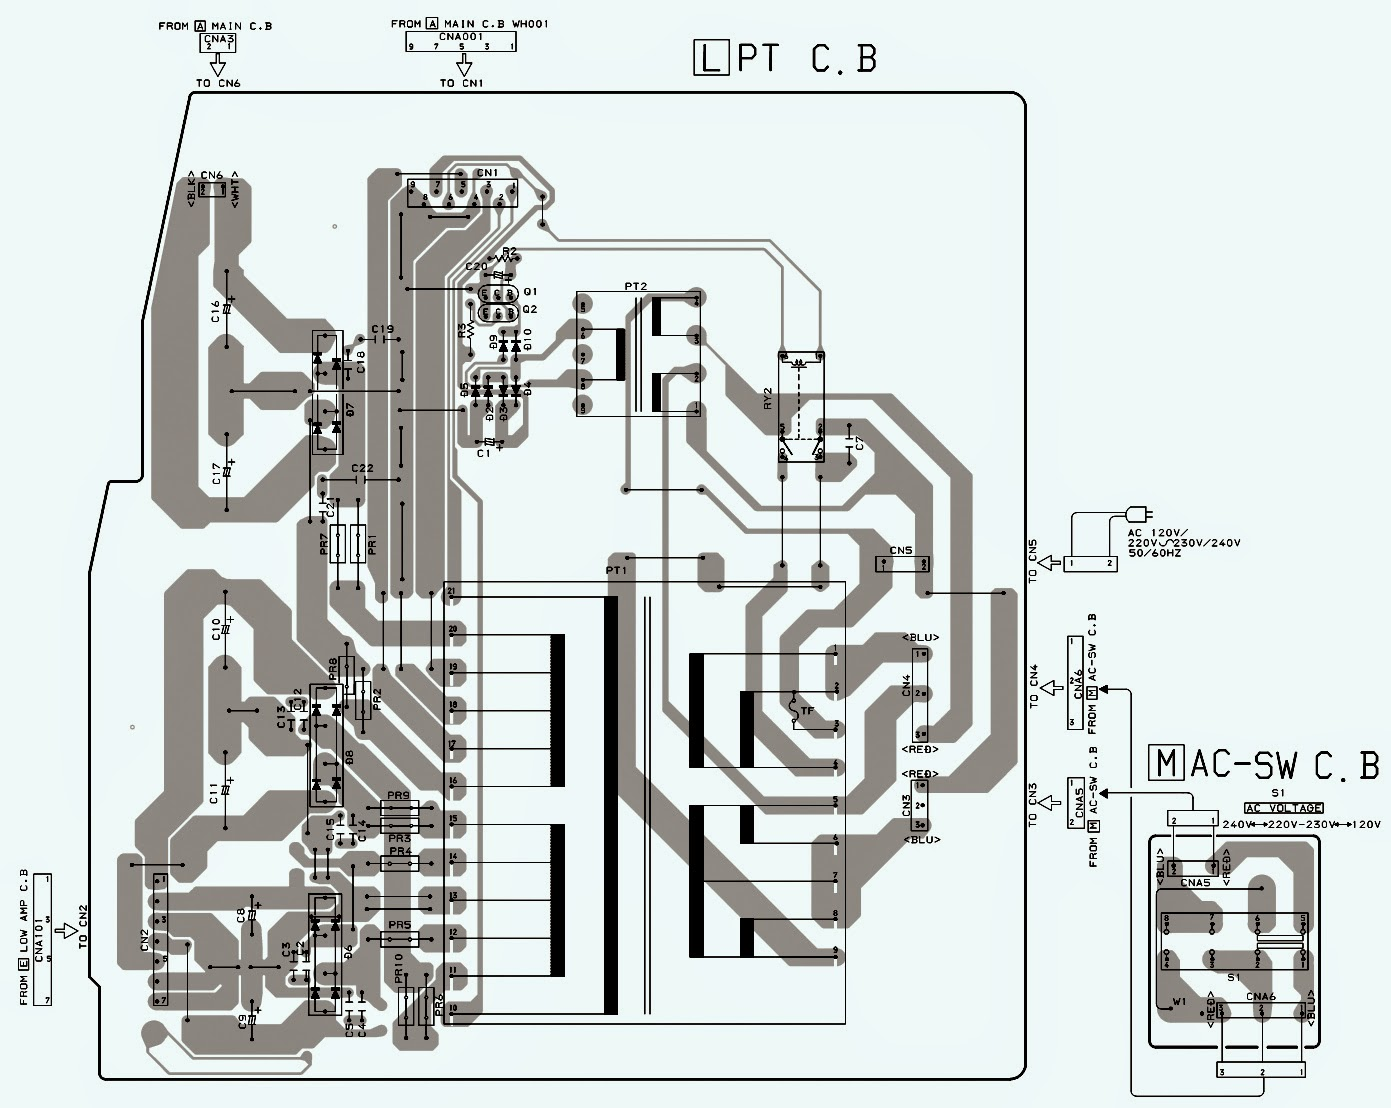 110 volt transformer wiring diagram sv650 headlight isolation get free image